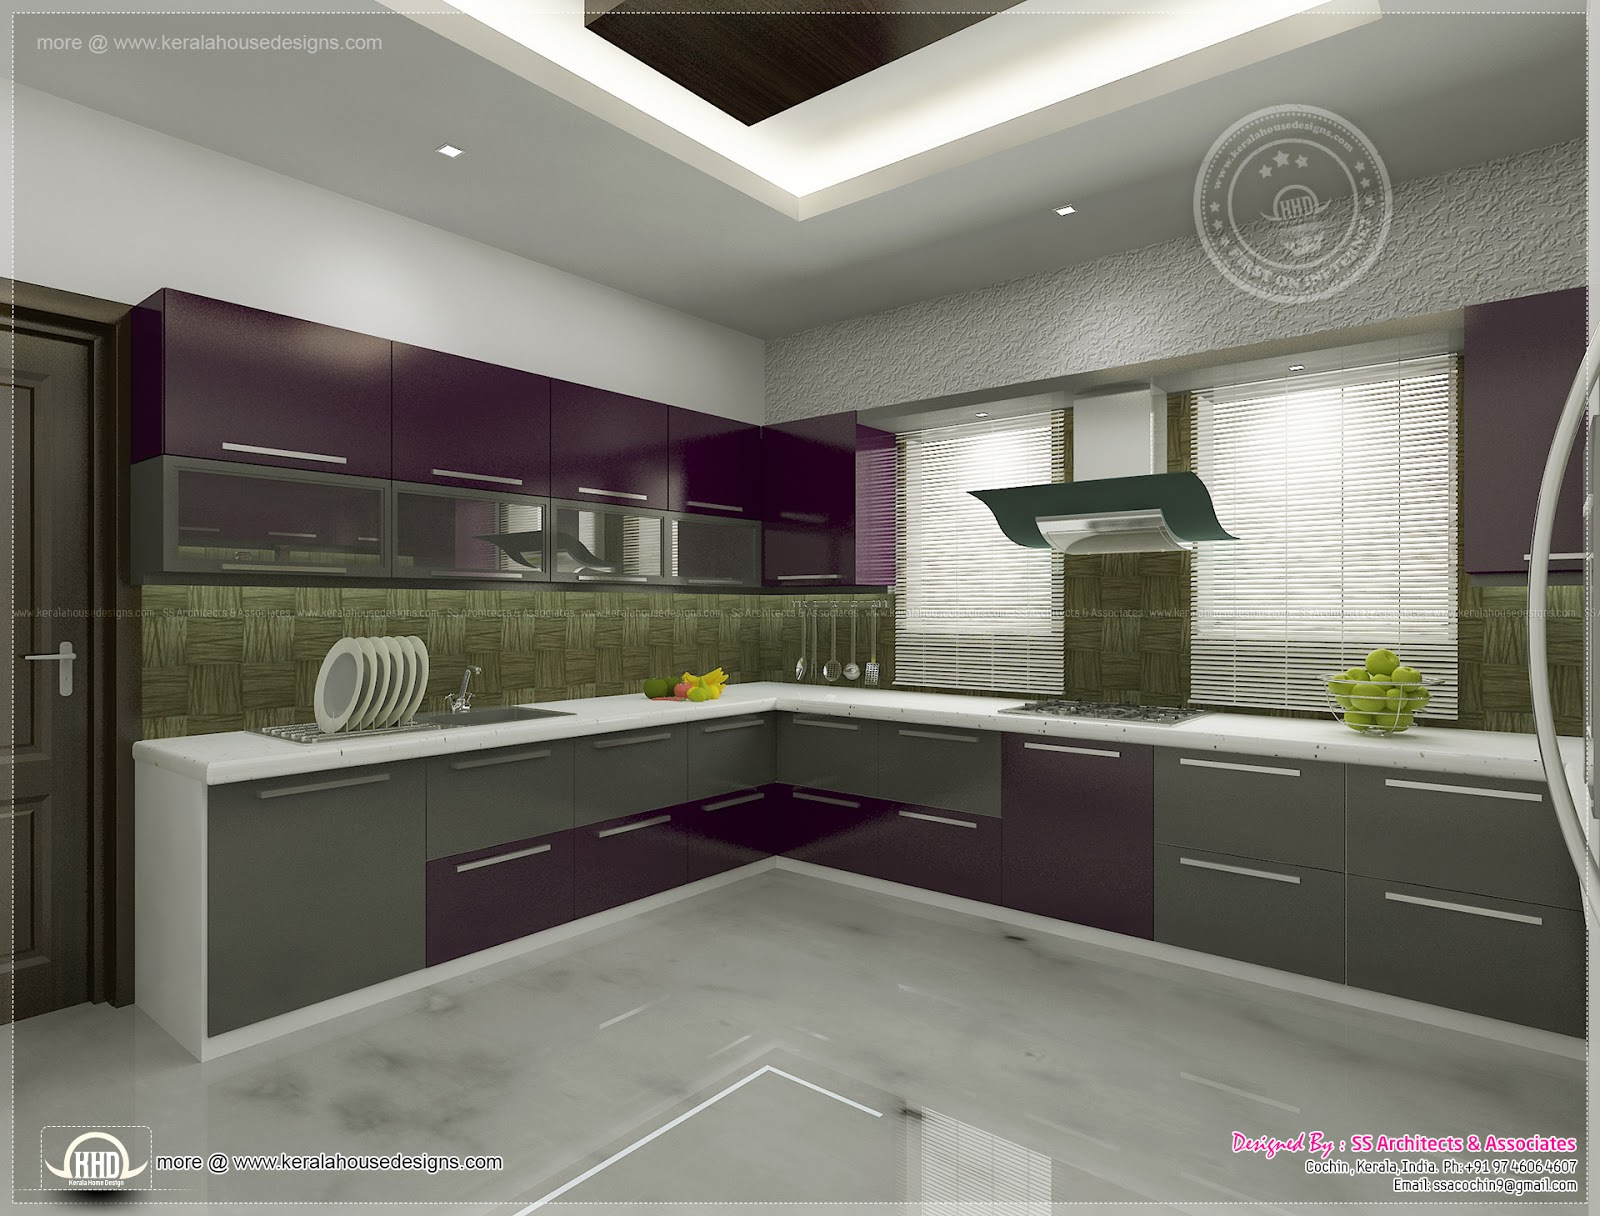 Kitchen interior views by ss architects cochin home for Kerala house interior arch design